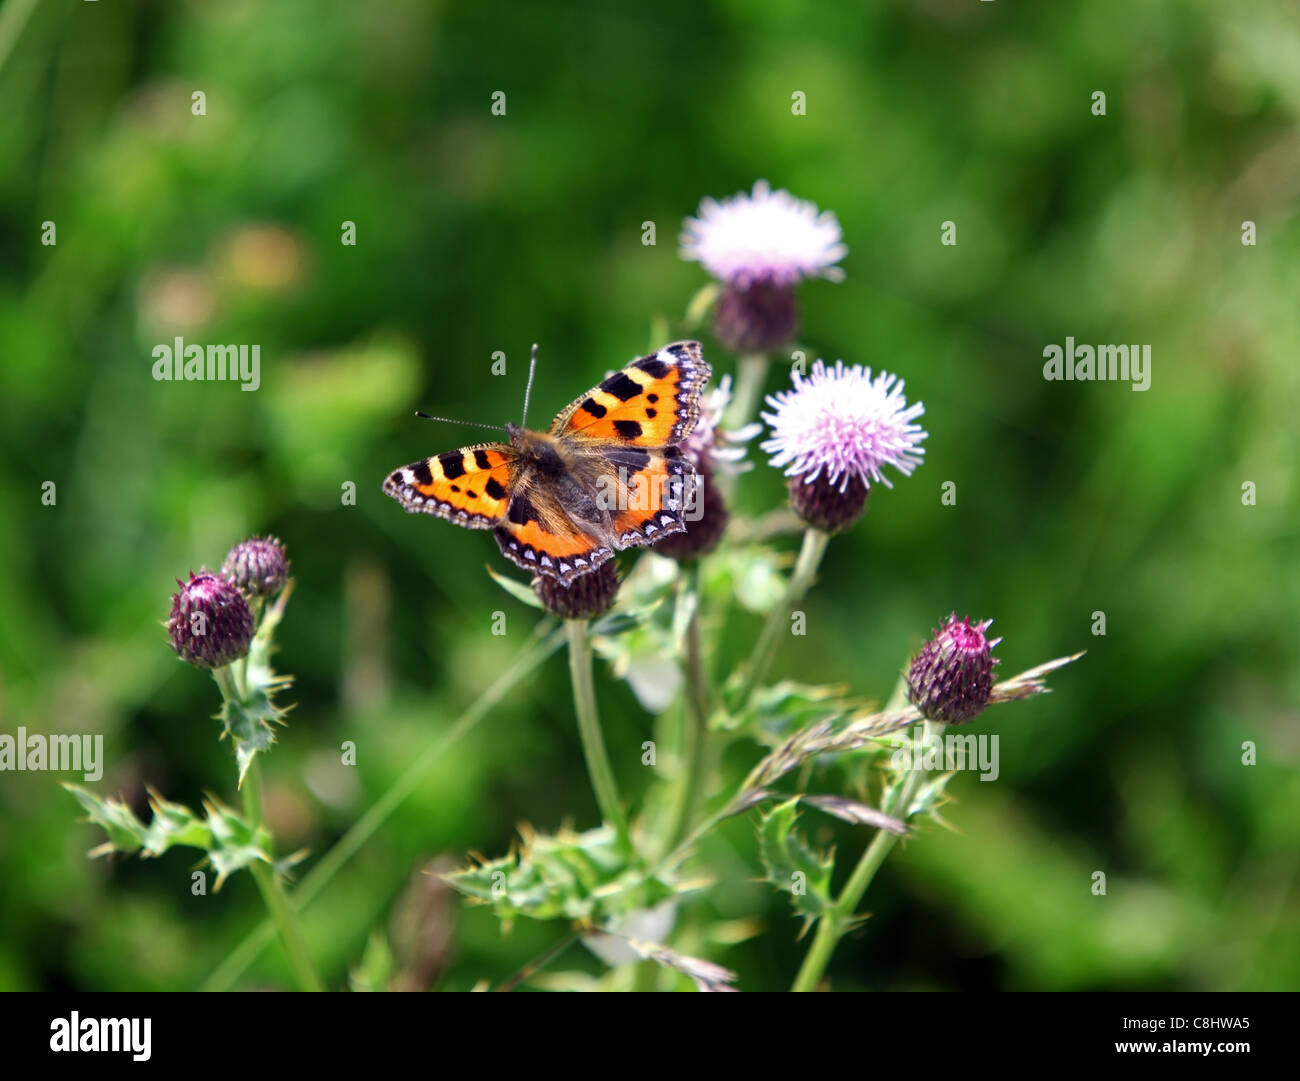 Small tortoiseshell (Aglais urticae) butterfly on thistle in Scotland, UK, during summer months - Stock Image